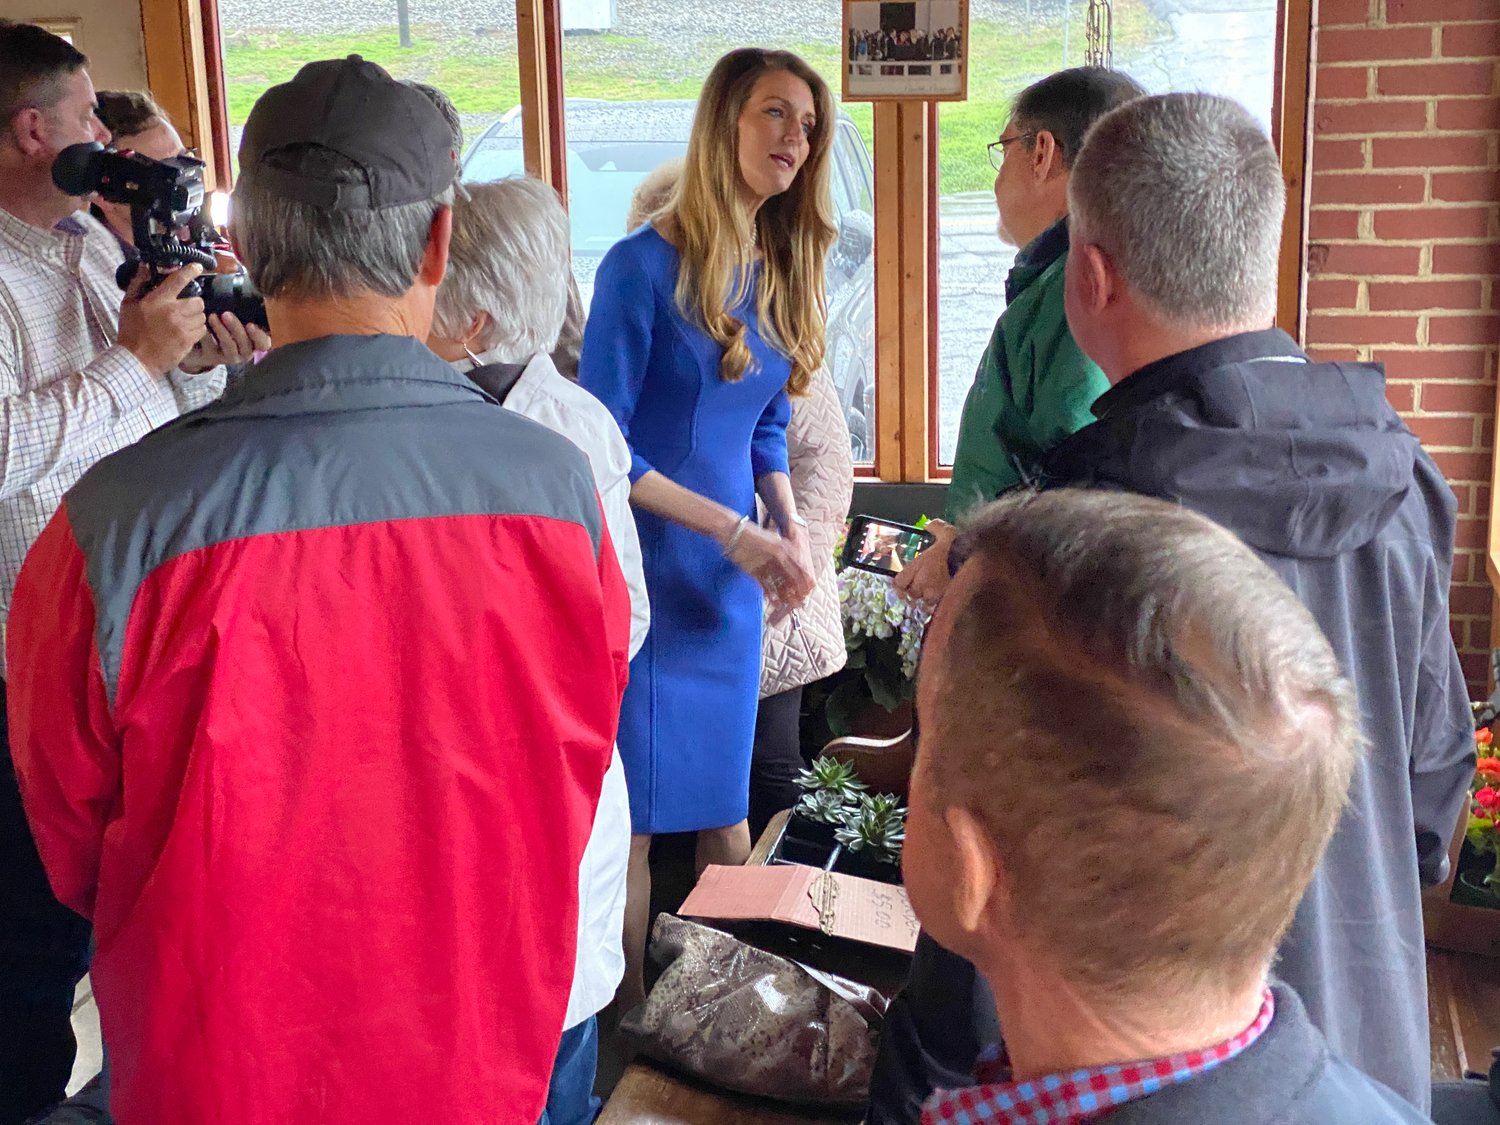 United States Senator Kelly Loeffler made a campaign stop in Emerson Thursday morning.